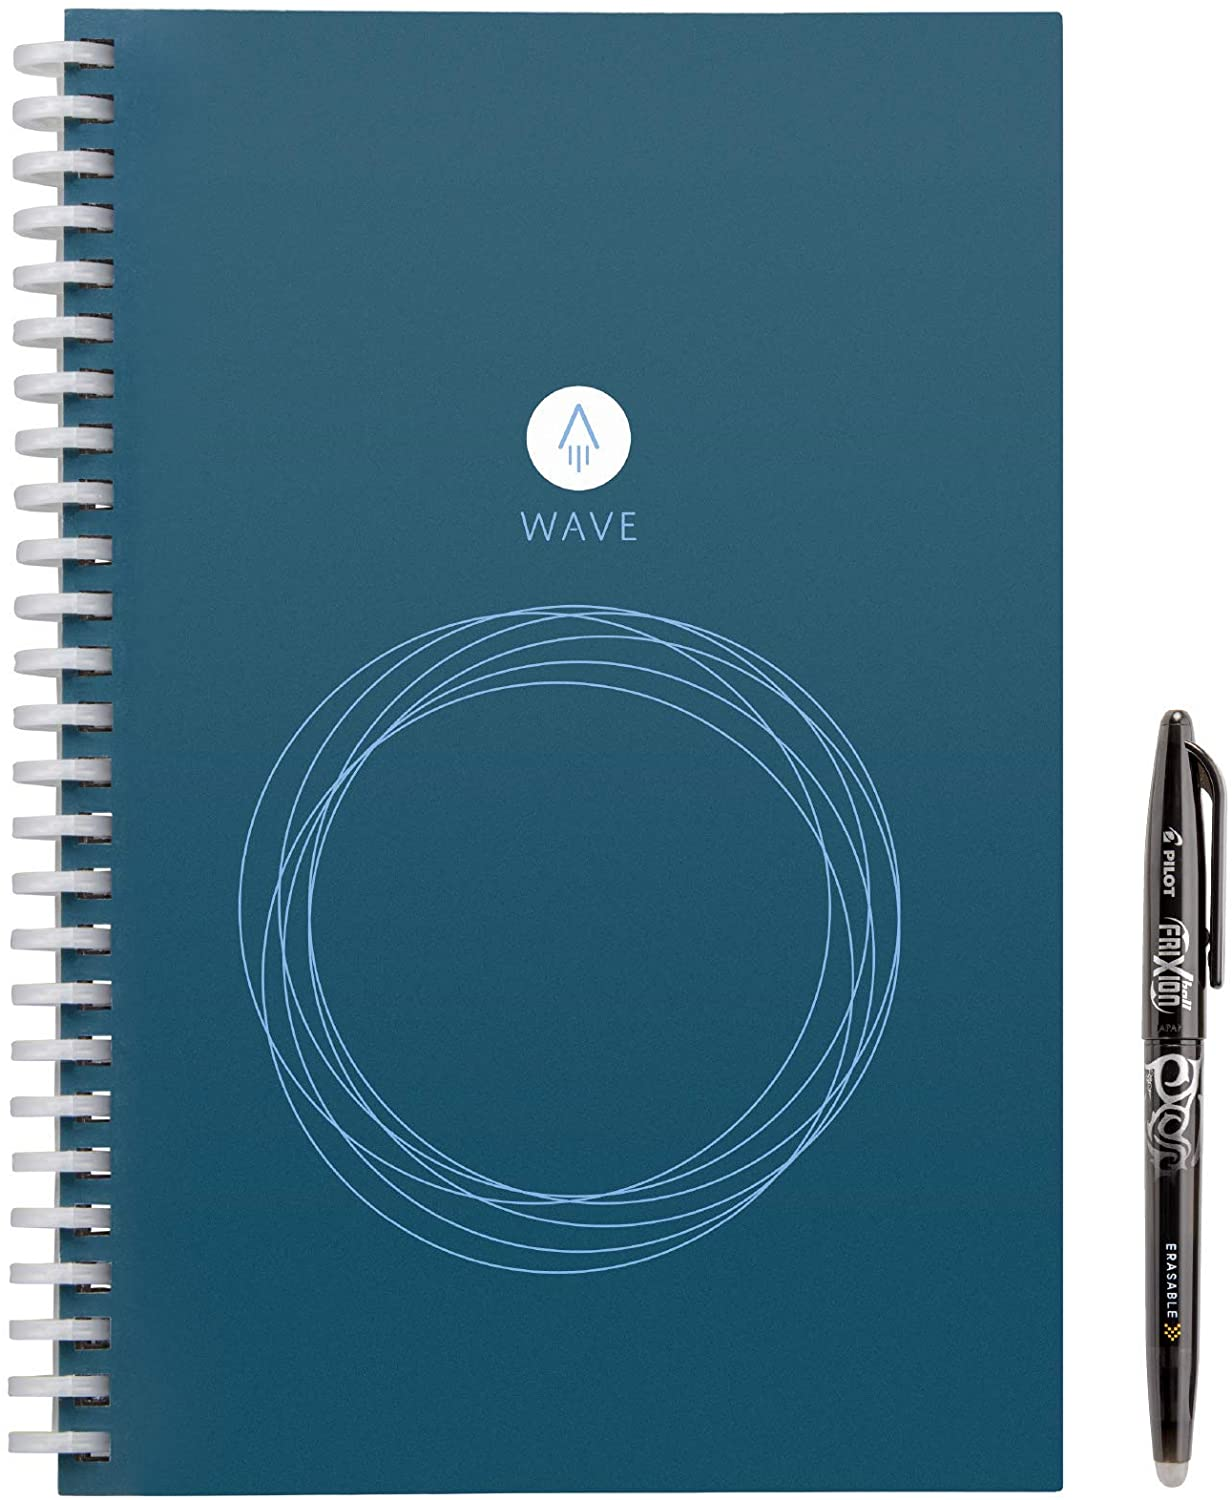 """Rocketbook Wave Smart Notebook - Dotted Grid Eco-Friendly Notebook with 1 Pilot Frixion Pen Included - Executive Size (6"""" x 8.8"""")"""